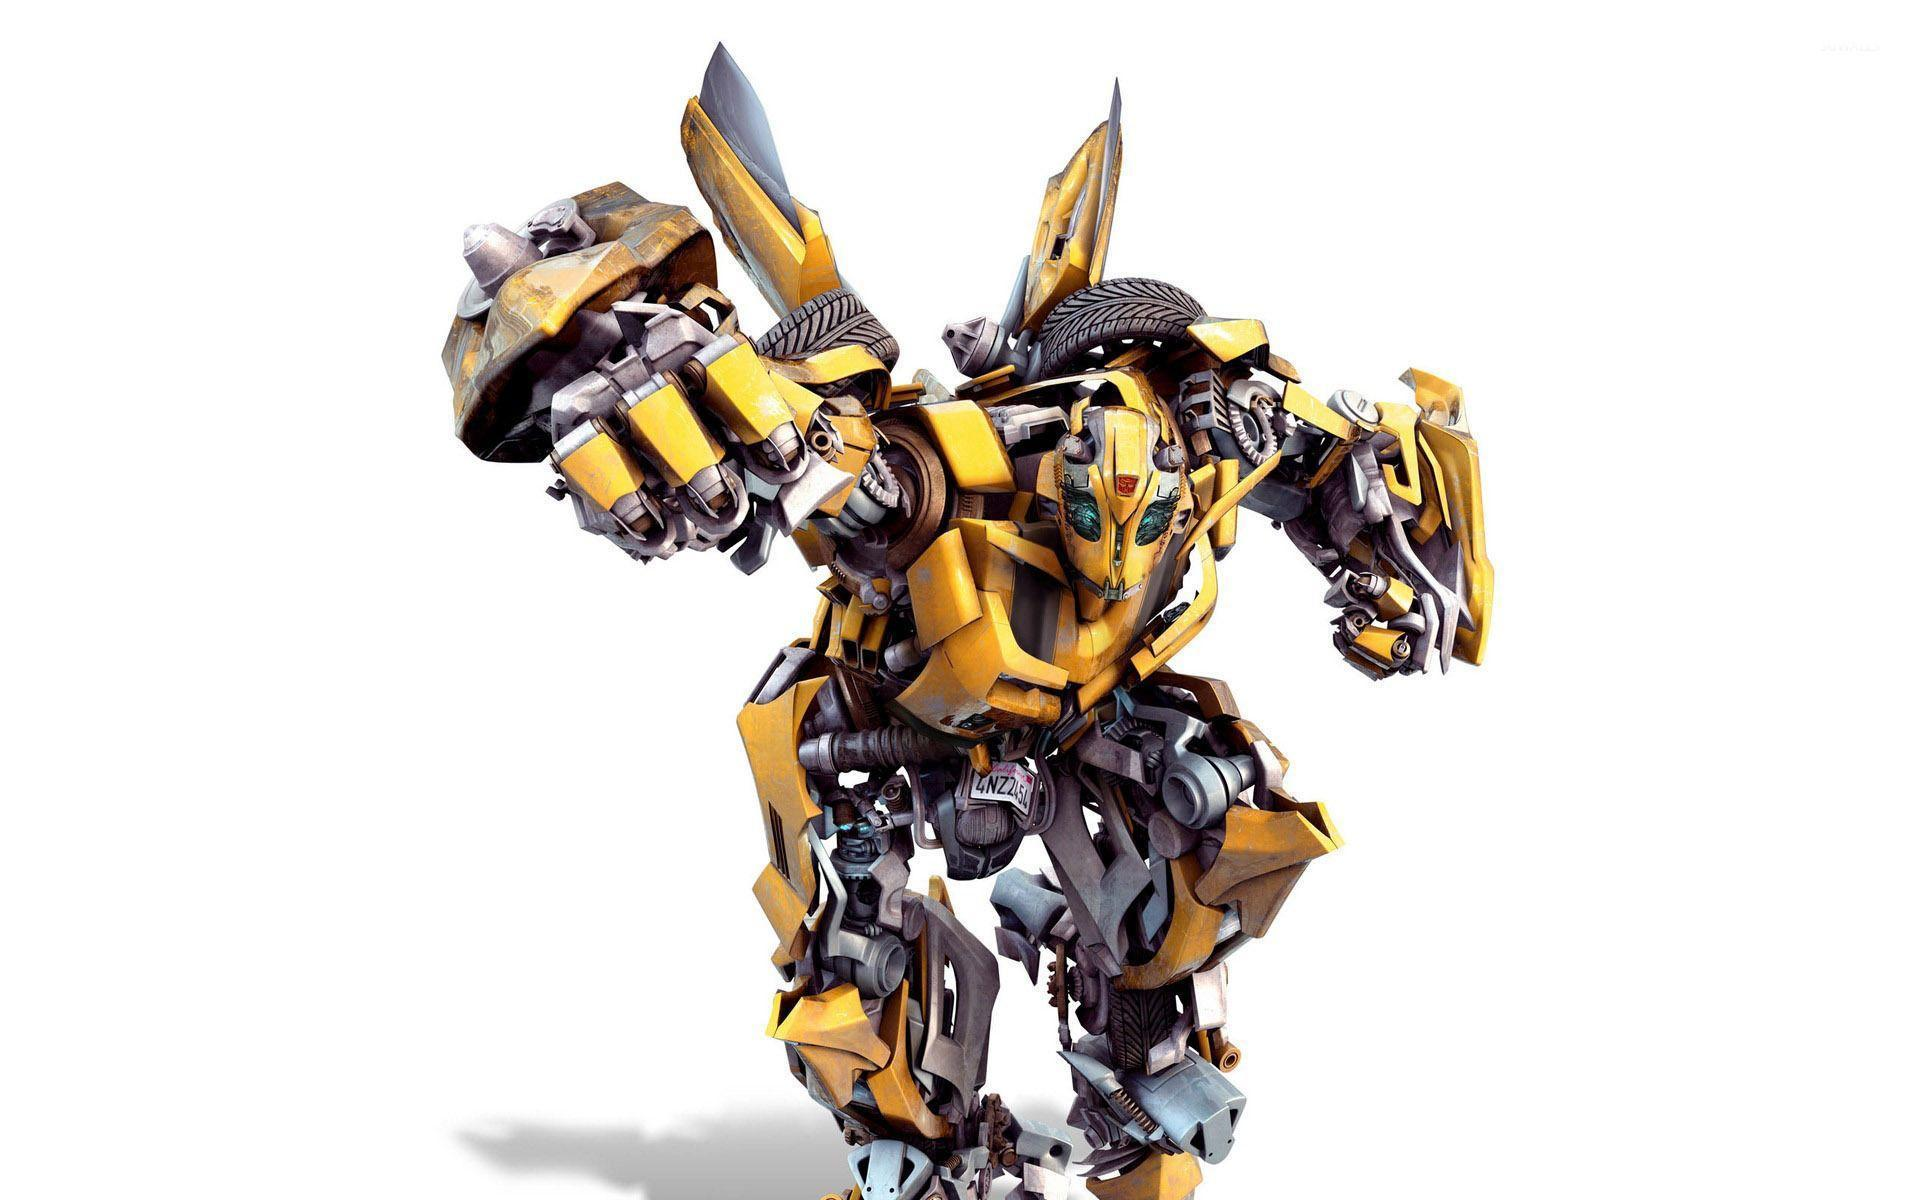 Transformers 5 Bumblebee Wallpapers Wallpaper Cave HD Wallpapers Download Free Images Wallpaper [1000image.com]